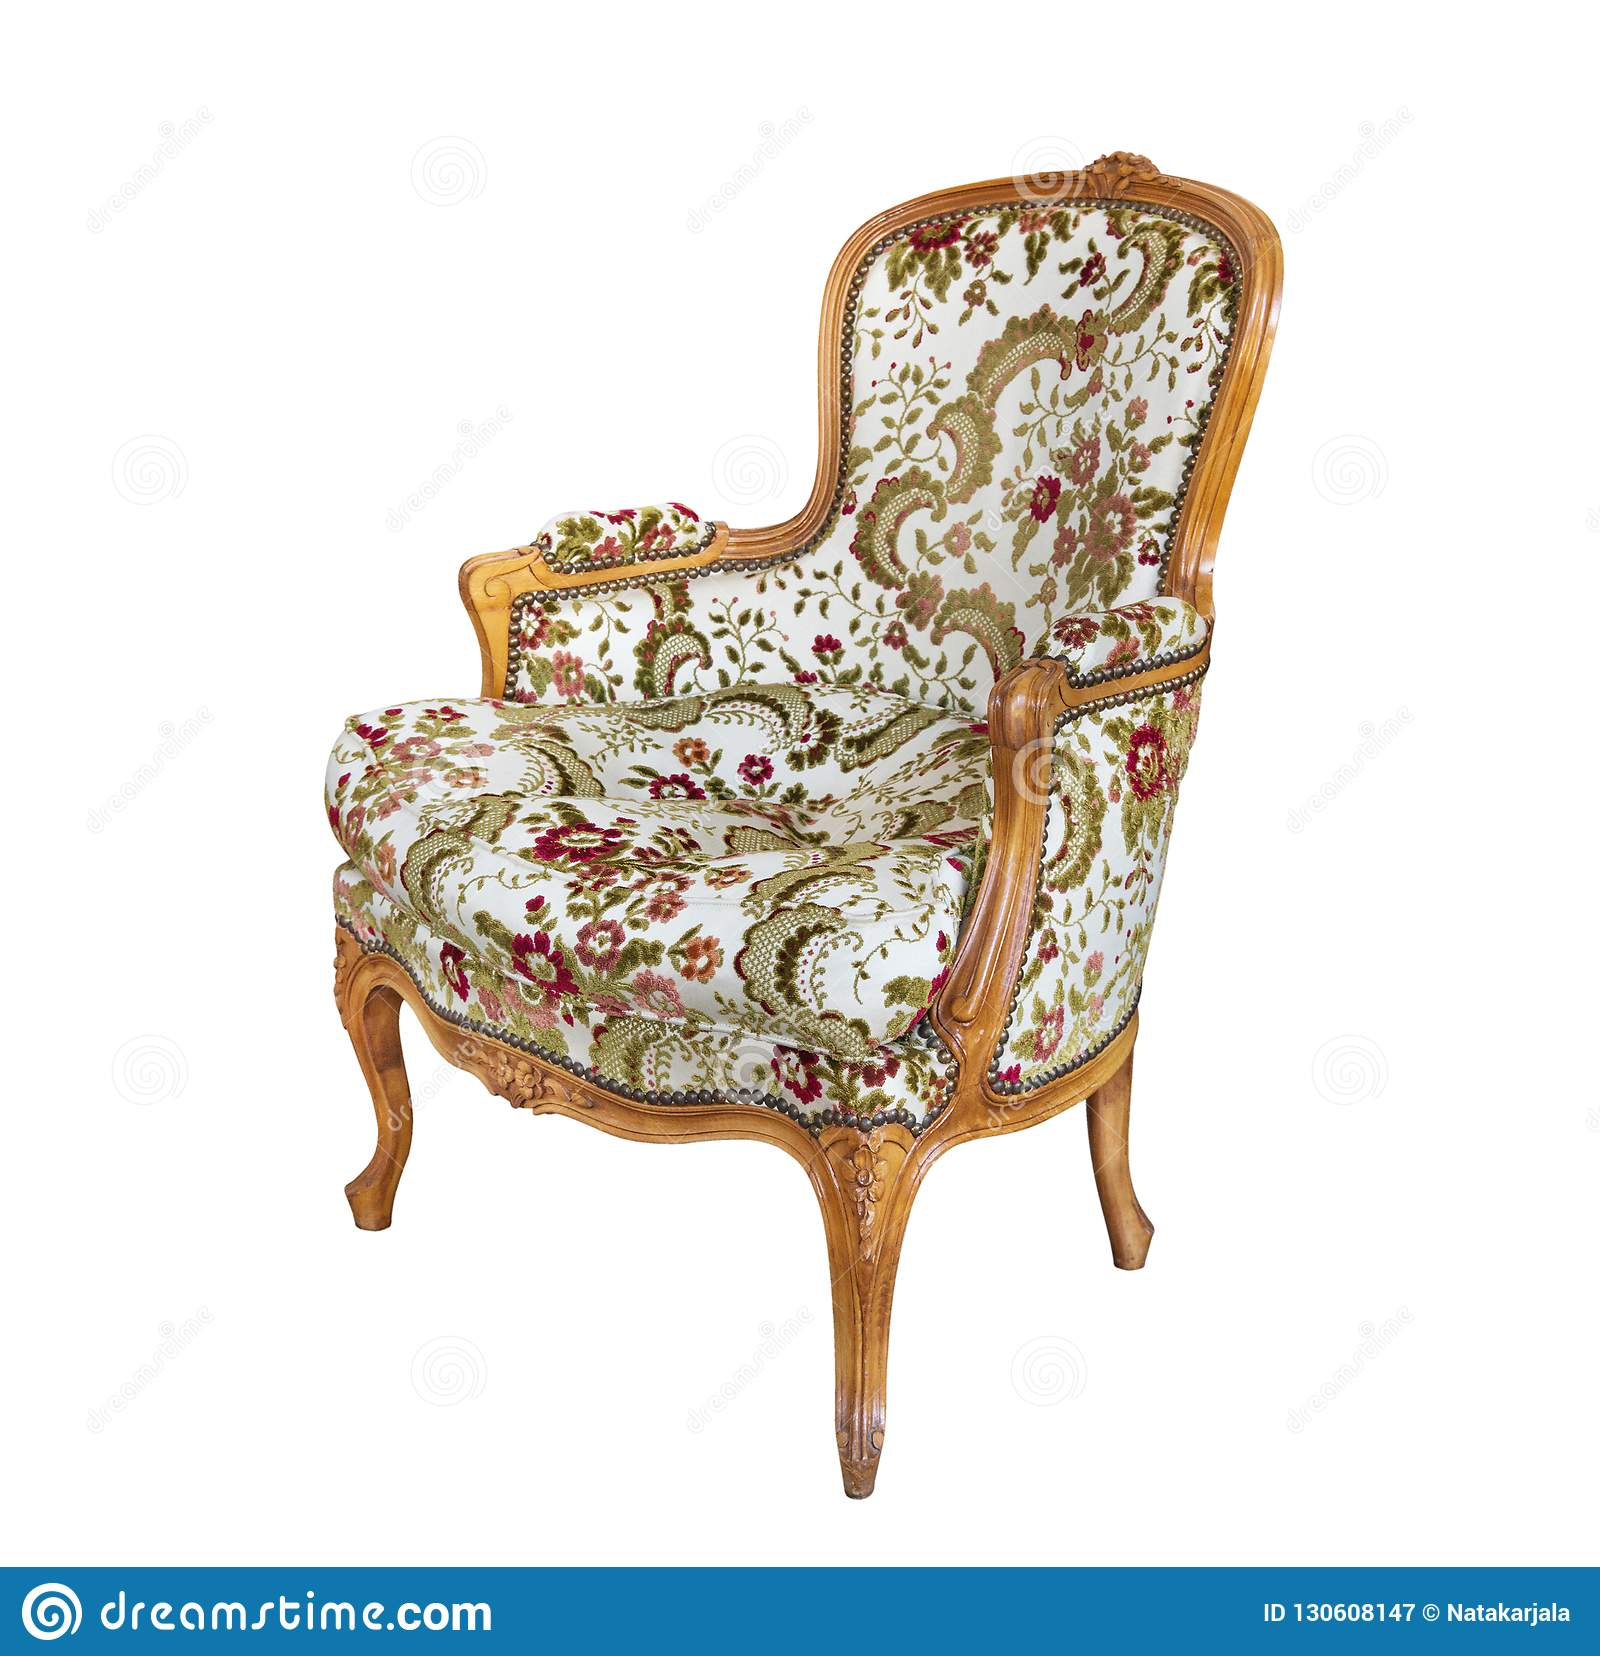 Antique Armchair With Upholstered Fabric And Wood Trim Isolated On